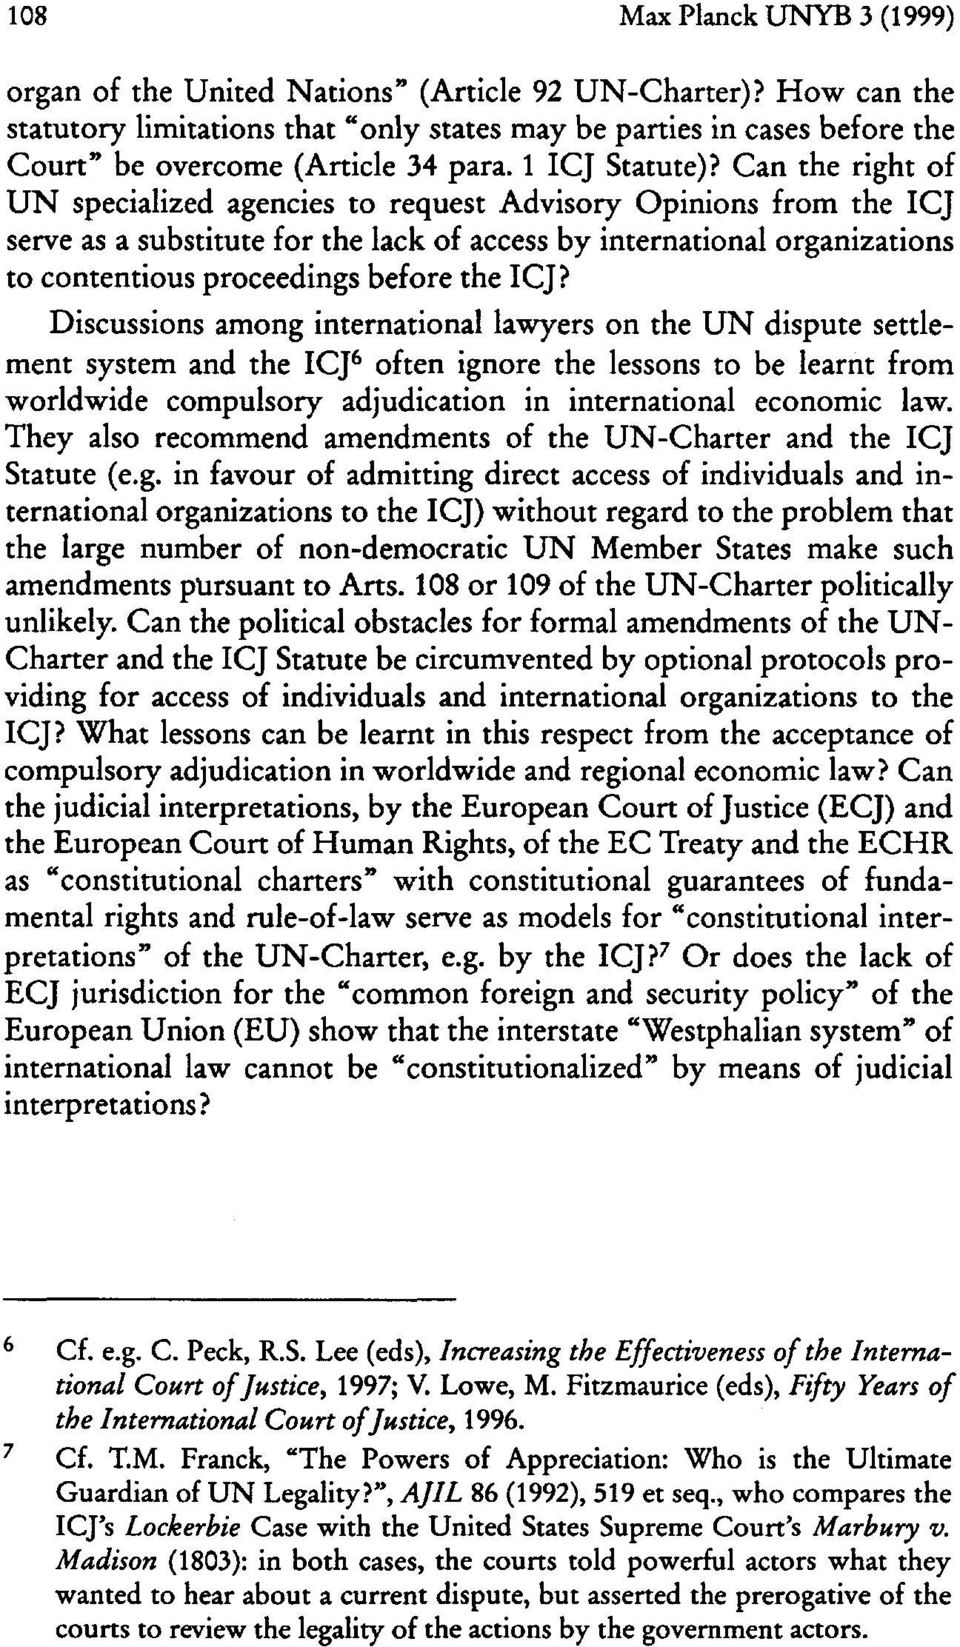 Can the right of UN specialized agencies to request Advisory Opinions from the ICJ serve as a substitute for the lack of access by international organizations to contentious proceedings before the